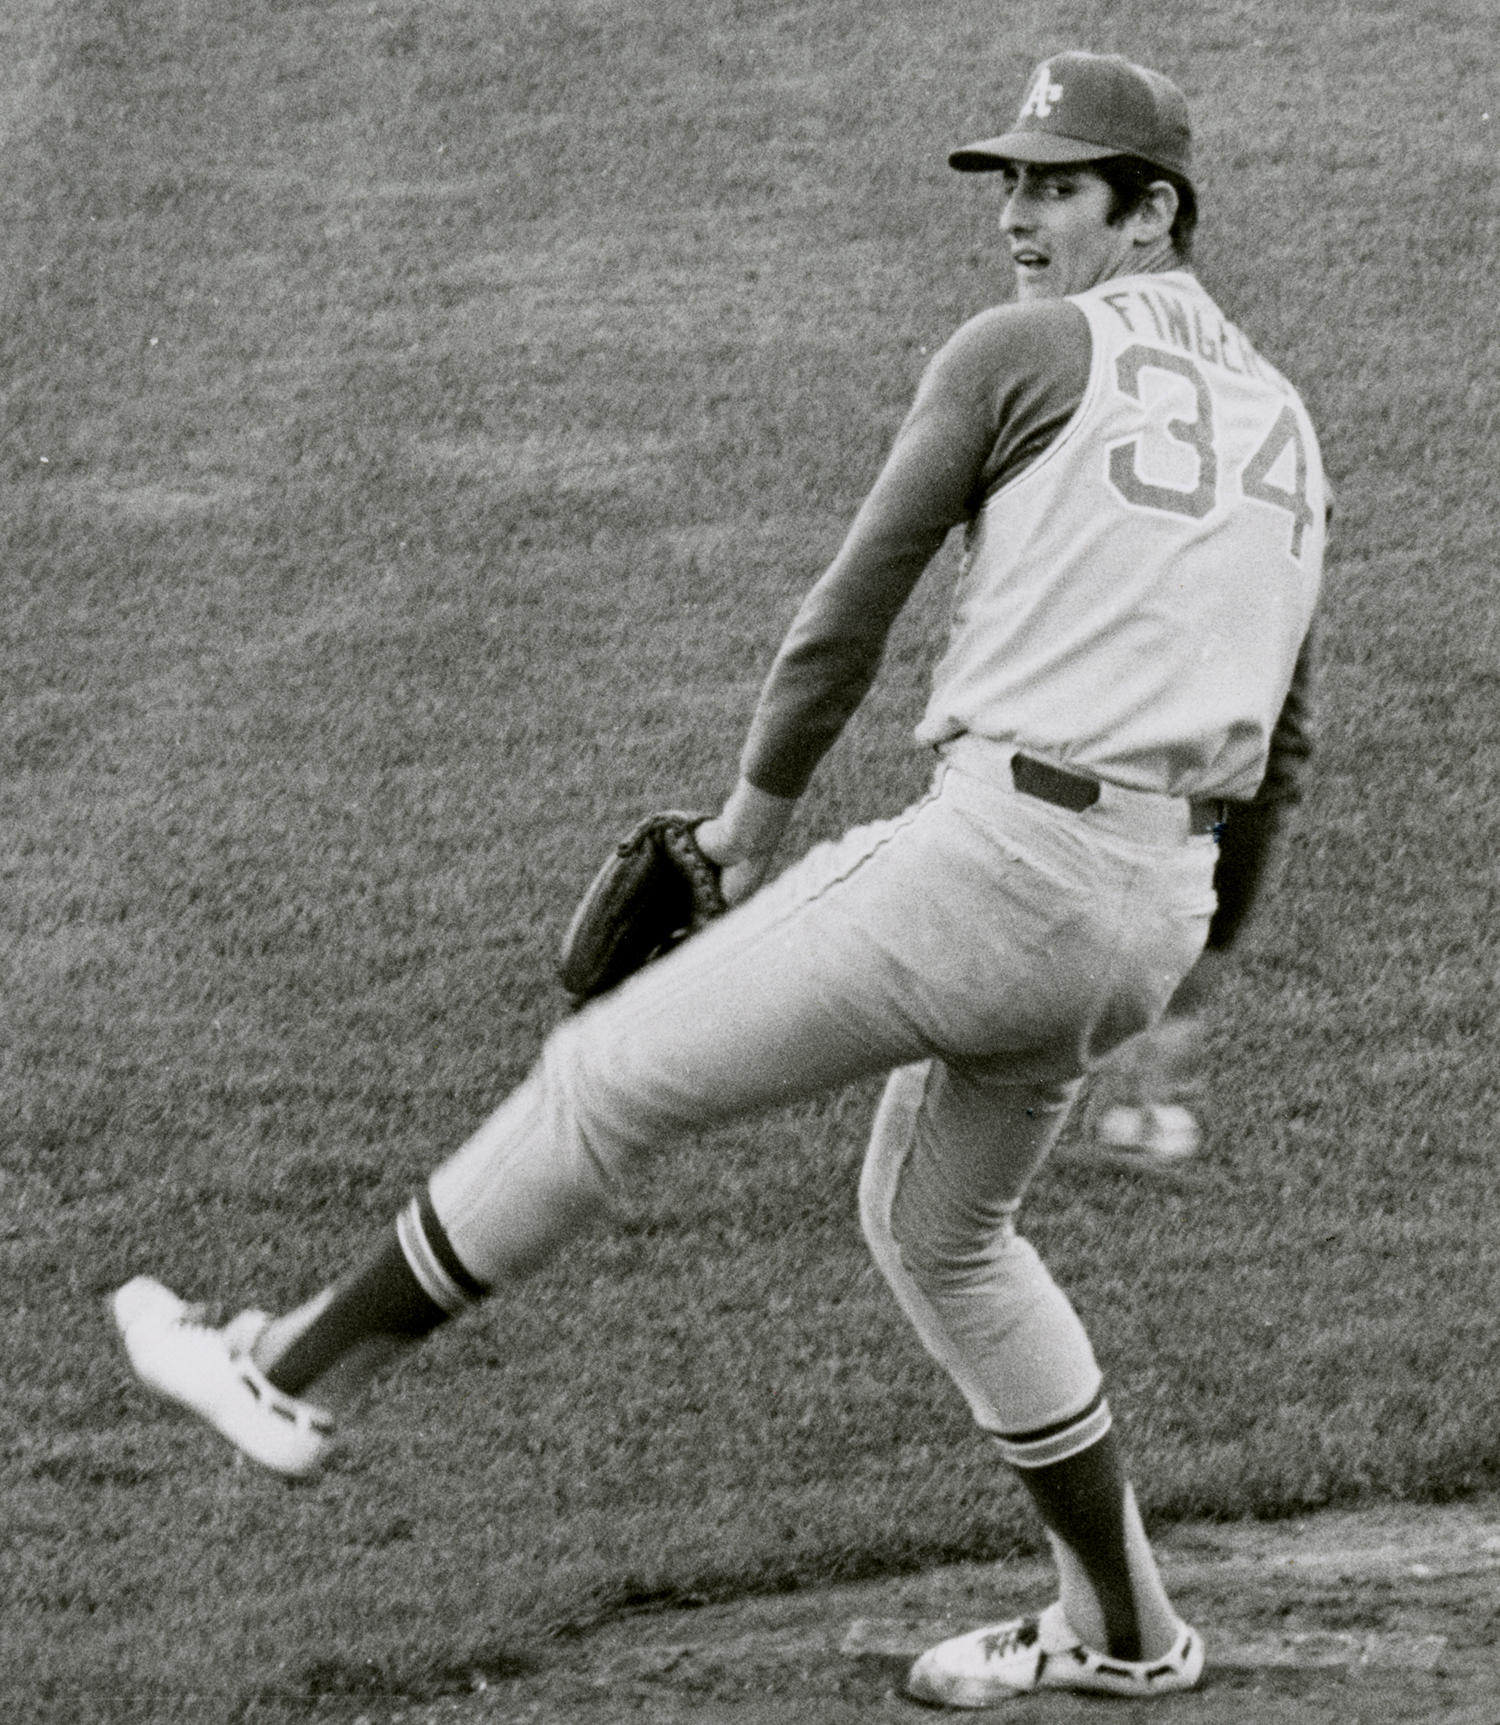 Rollie Fingers was a key contributor to the Oakland Athletics teams that three-peated as world champions from 1972-74. He was the World Series MVP in 1974. (Doug McWilliams / National Baseball Hall of Fame and Museum)